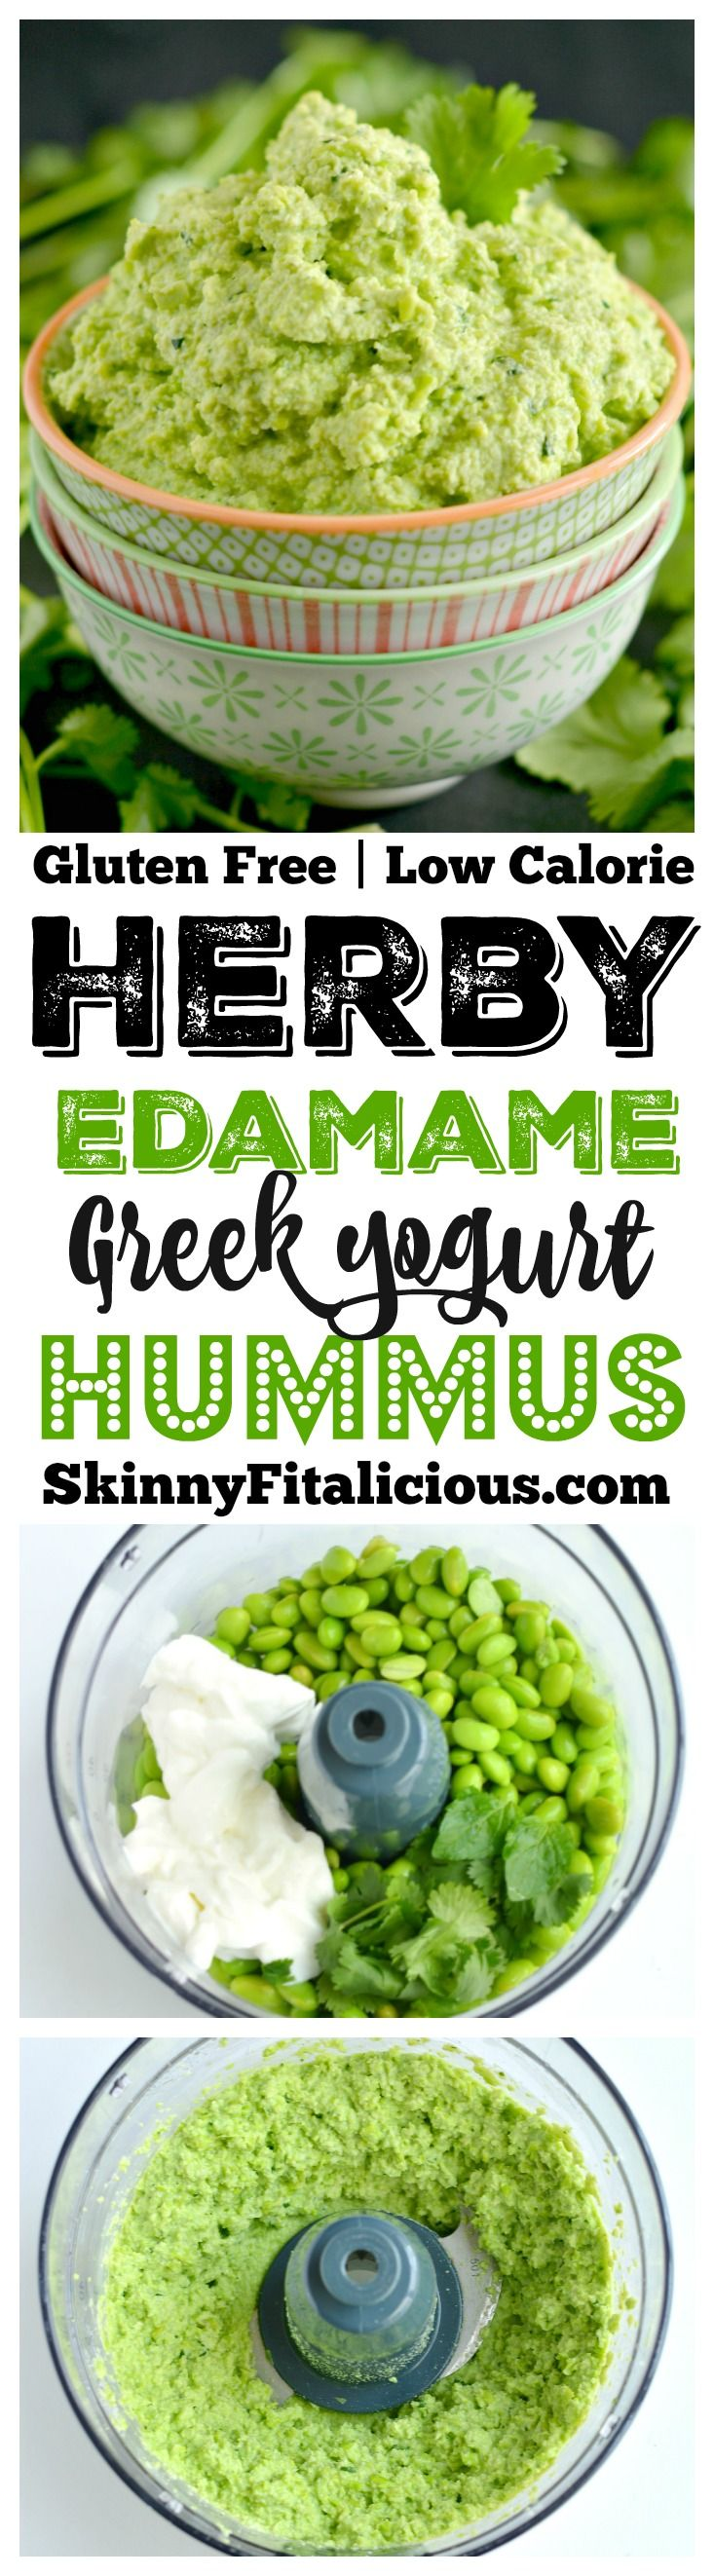 Herby Edamame Hummus made with a few ingredients in a blender, this simple hummus is layered with creamy Greek yogurt and bouncing with tangy, herby flavors of mint and cilantro. A healthy, gluten free protein packed snack for any day of the week! Gluten